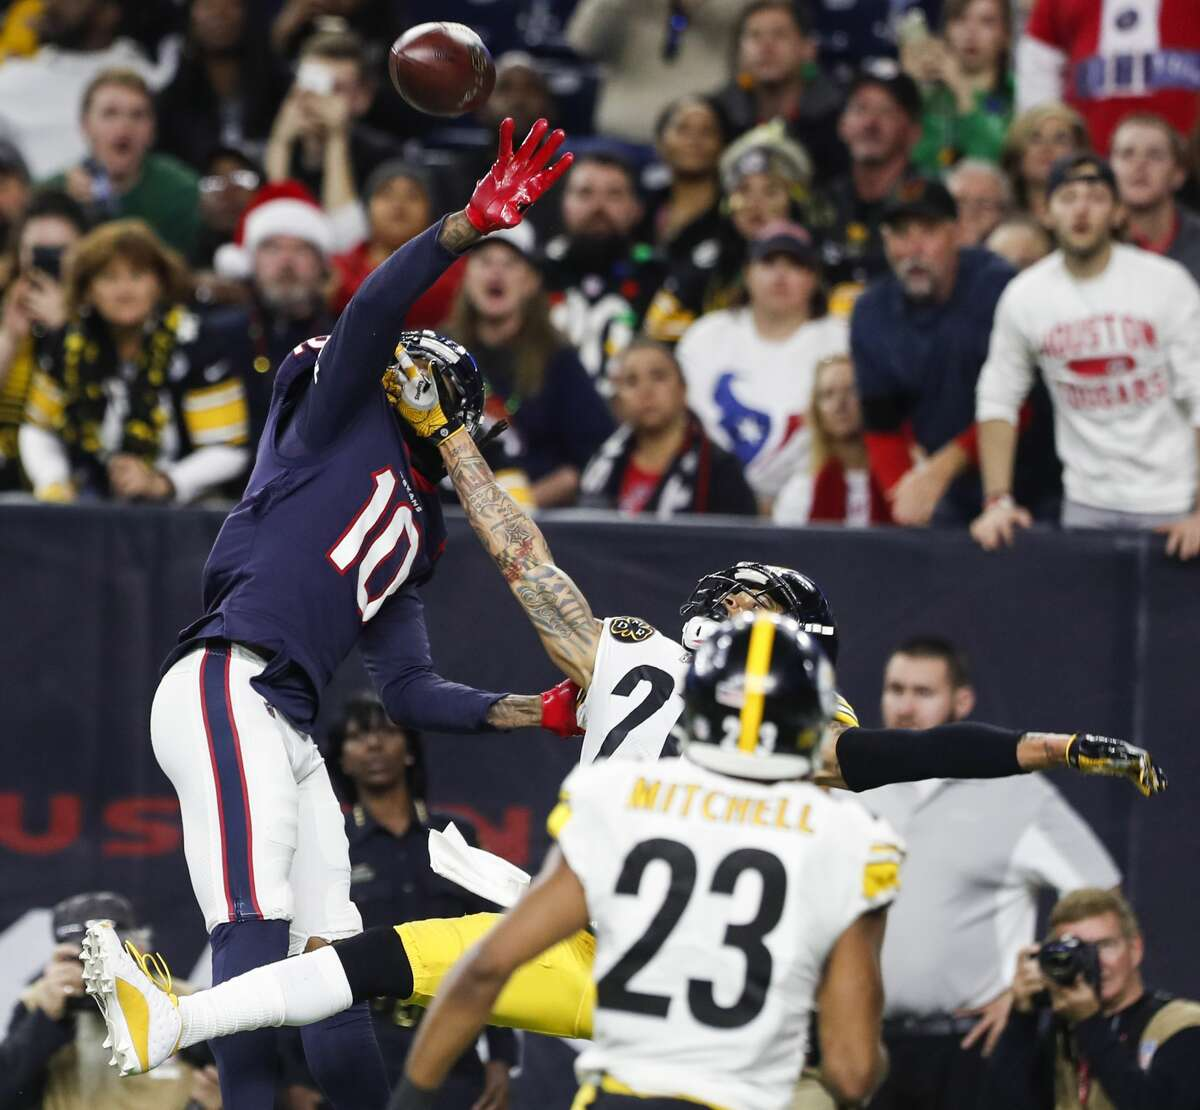 Wide receiver/Tight end The anemic passing game produced only eight completions. DeAndre Hopkins was the only player with more than one catch. He had four receptions for 65 yards and a touchdown. It wasn't the receivers' fault they threw only 17 passes. Grade: C